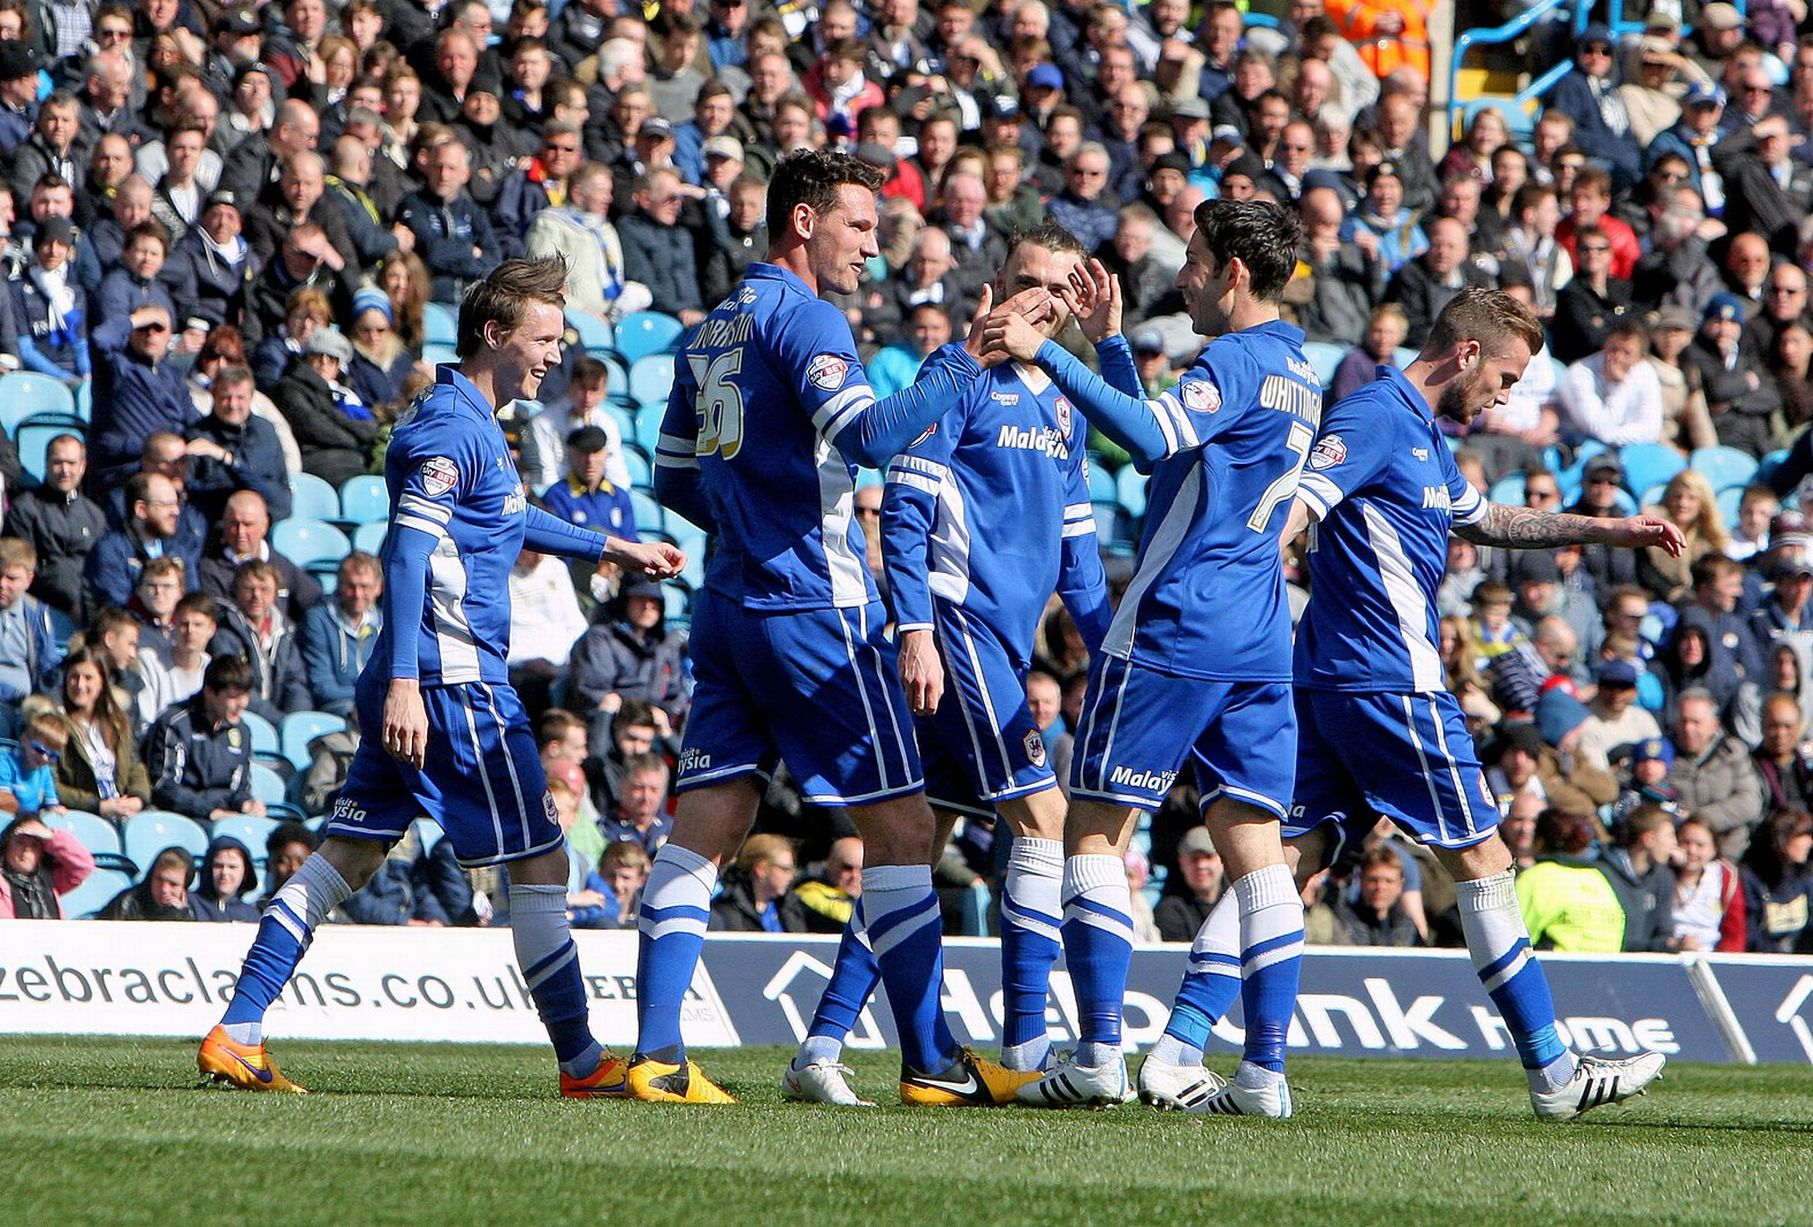 Cardiff-Reading 6 maggio, analisi e pronostico